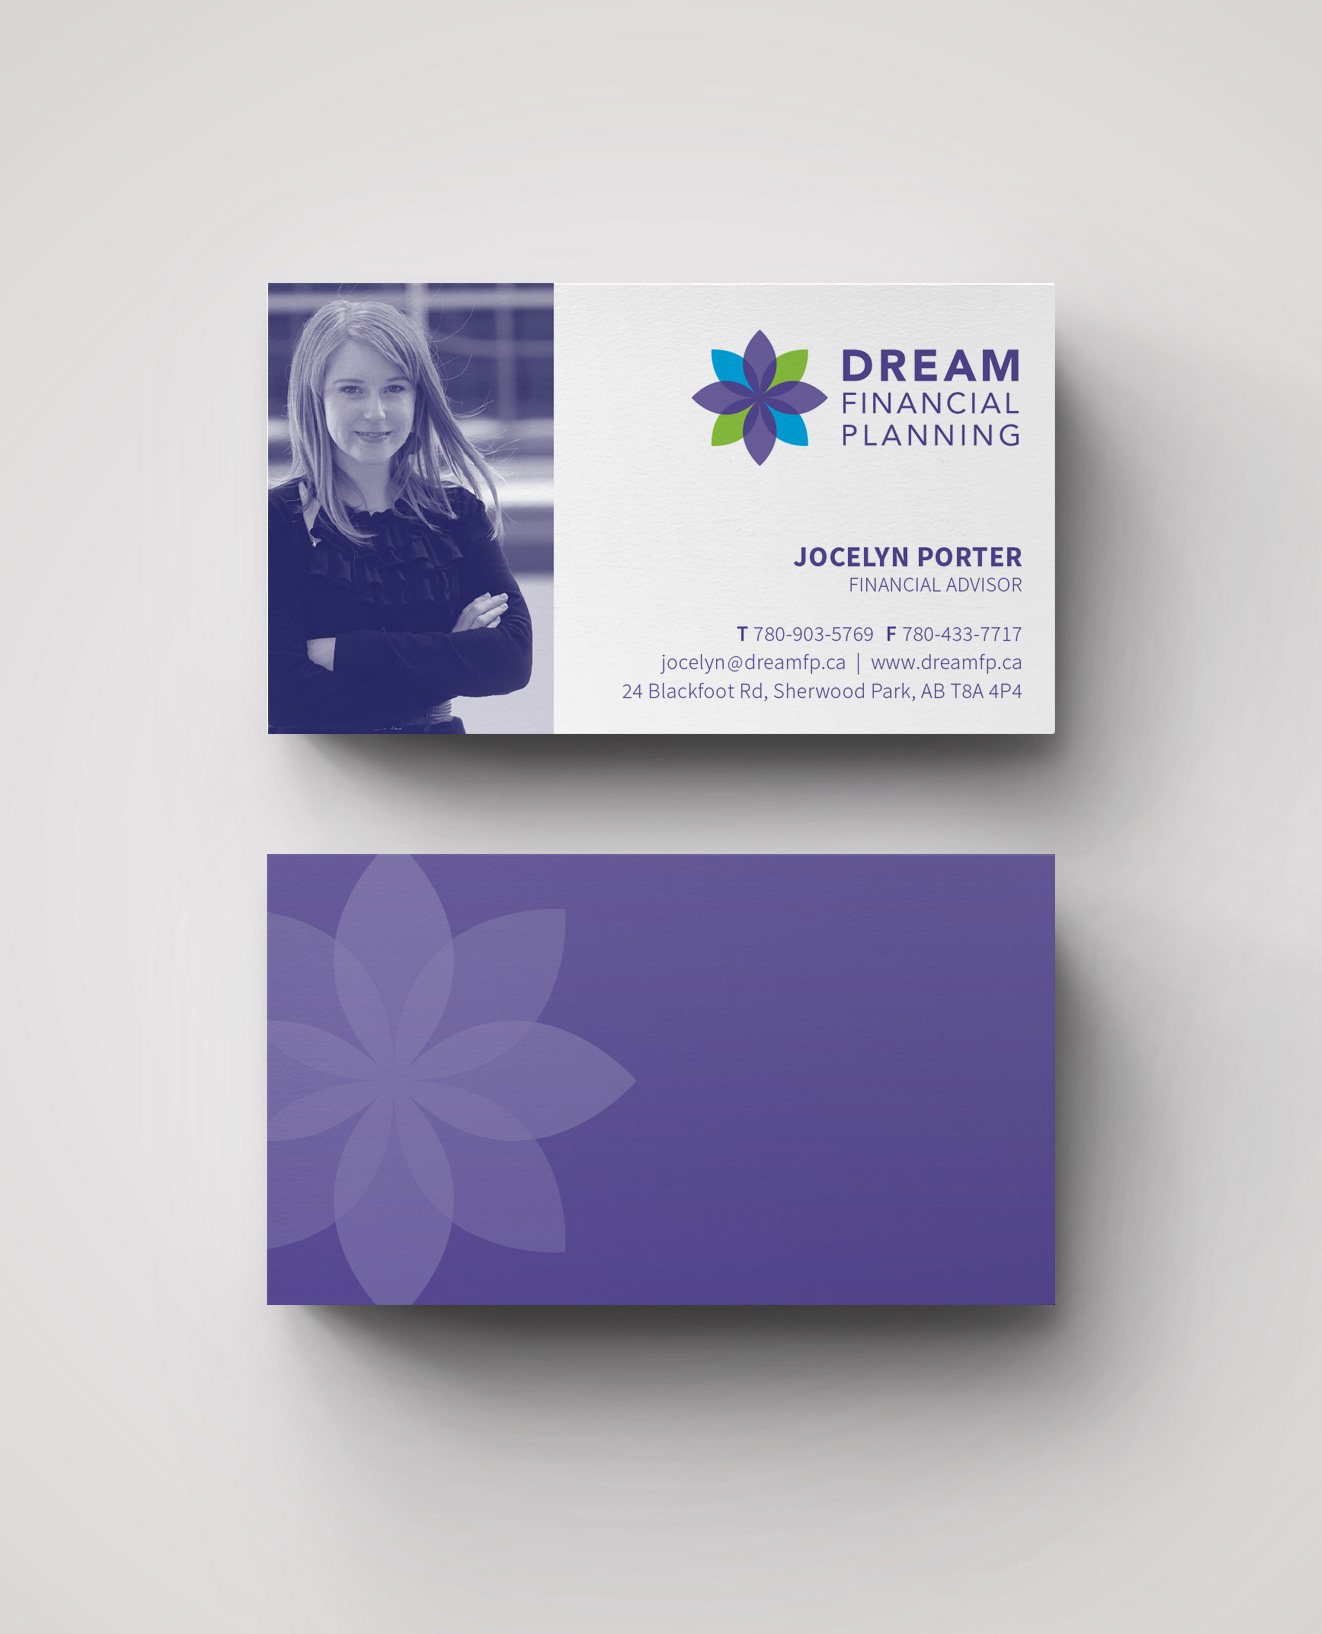 Dream Financial Planning – Business Card Front and Back